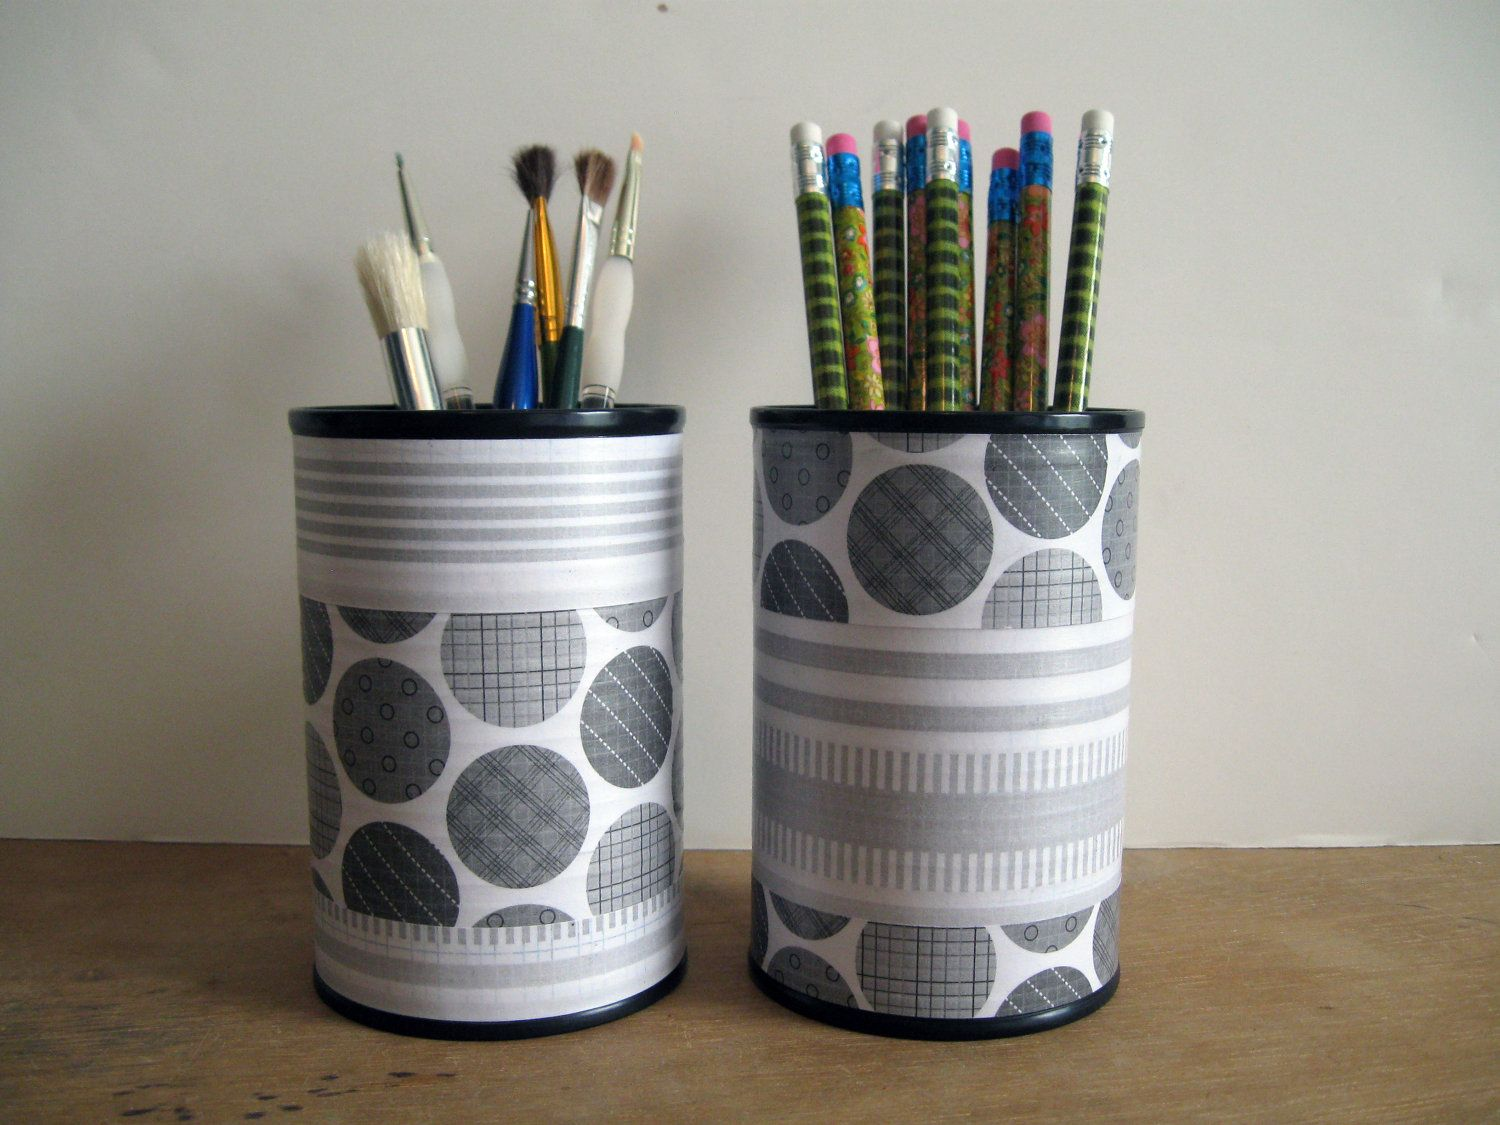 Number ten cans for sale - Tin Can Desk Accessories Pencil Brush Pen Holder Organizer Black White Gray Mod Style